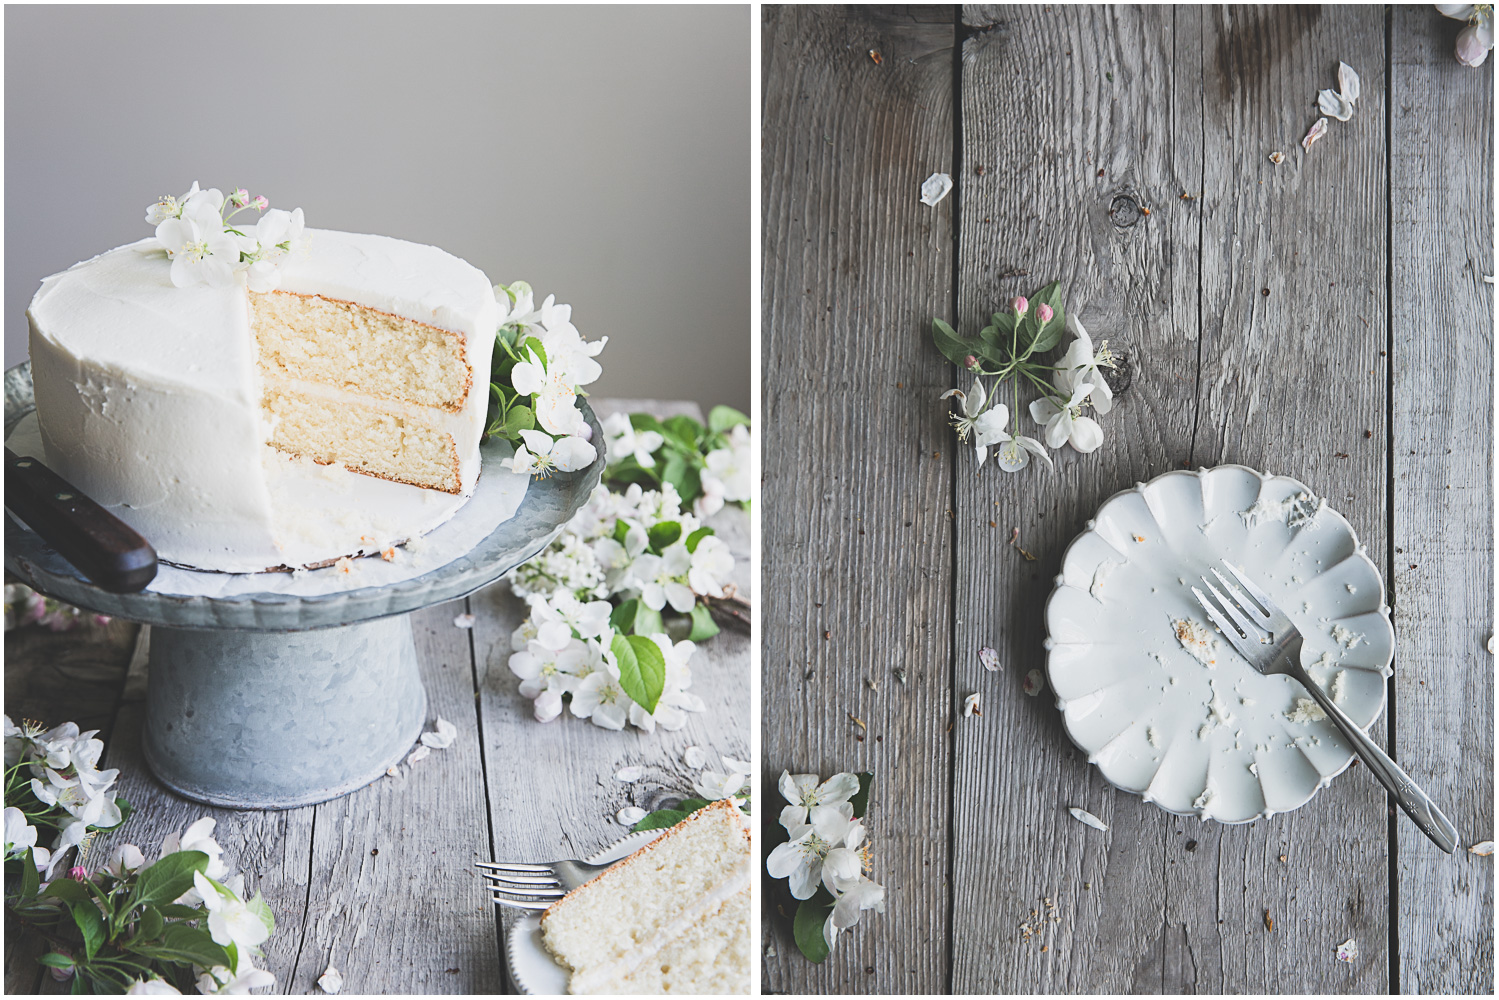 Classic white cake, decorated with apple blossoms